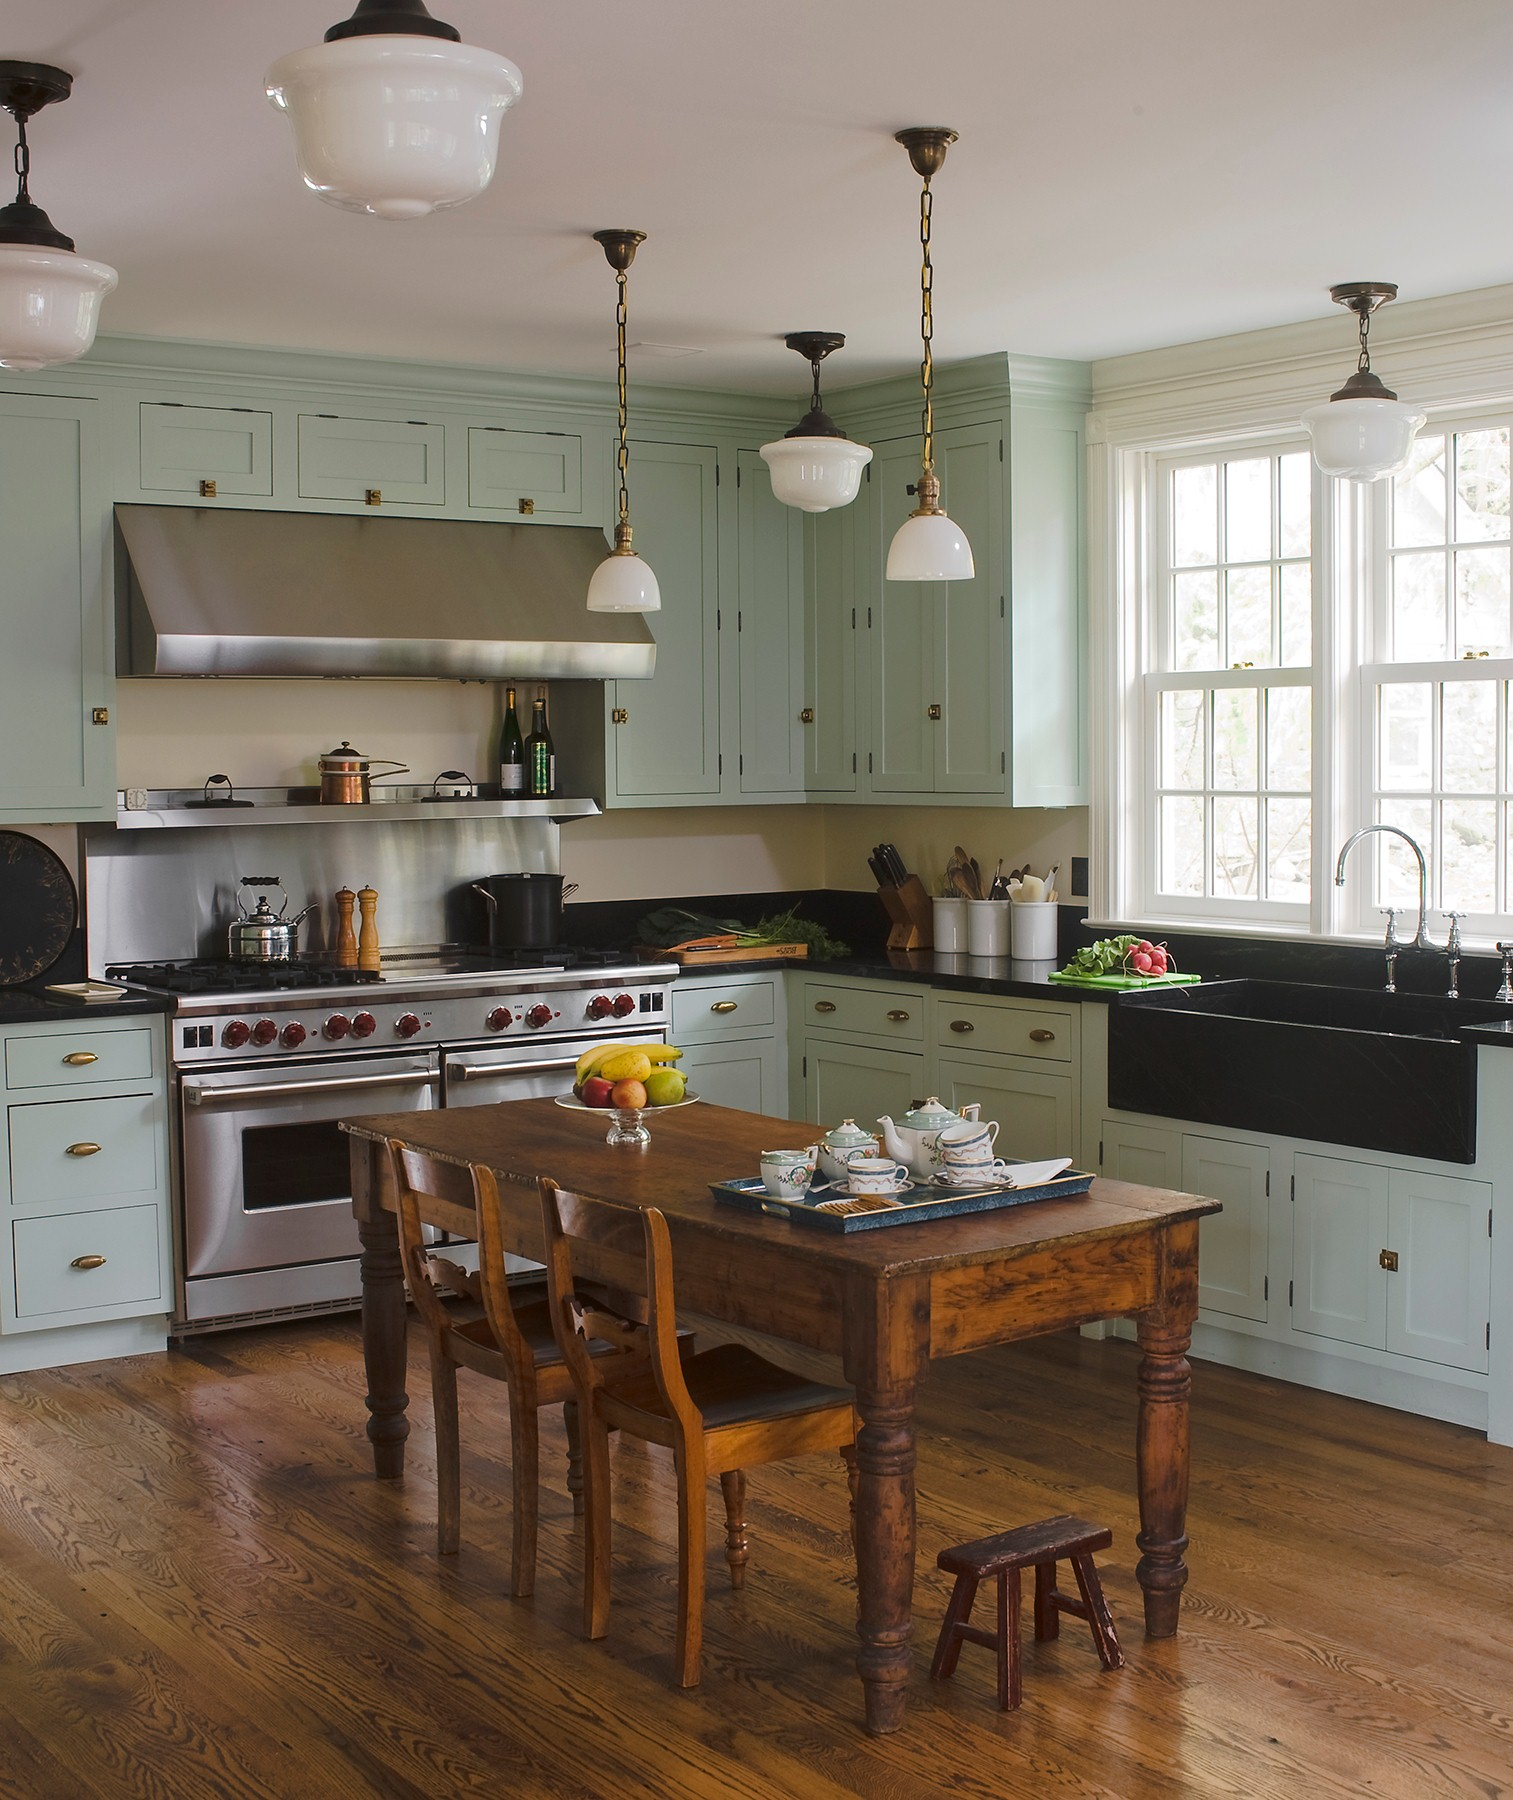 8 Impactful Small Kitchen Island Ideas To Brighten Your Home